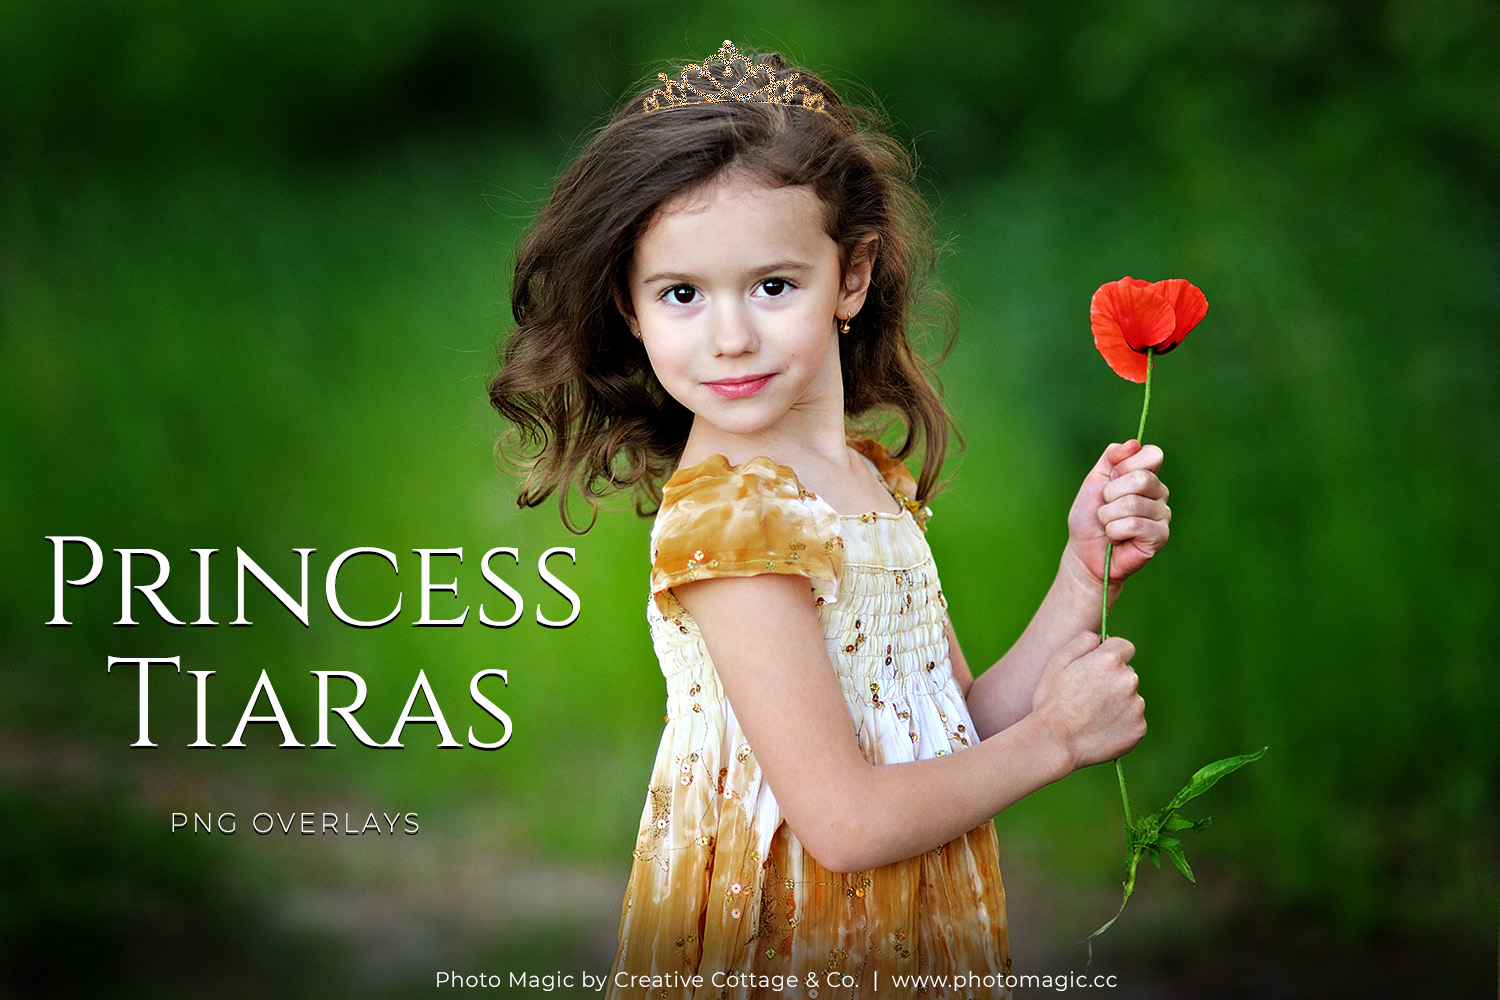 Fantasy Princess Tiara & Crowns Photo Overlays example image 1